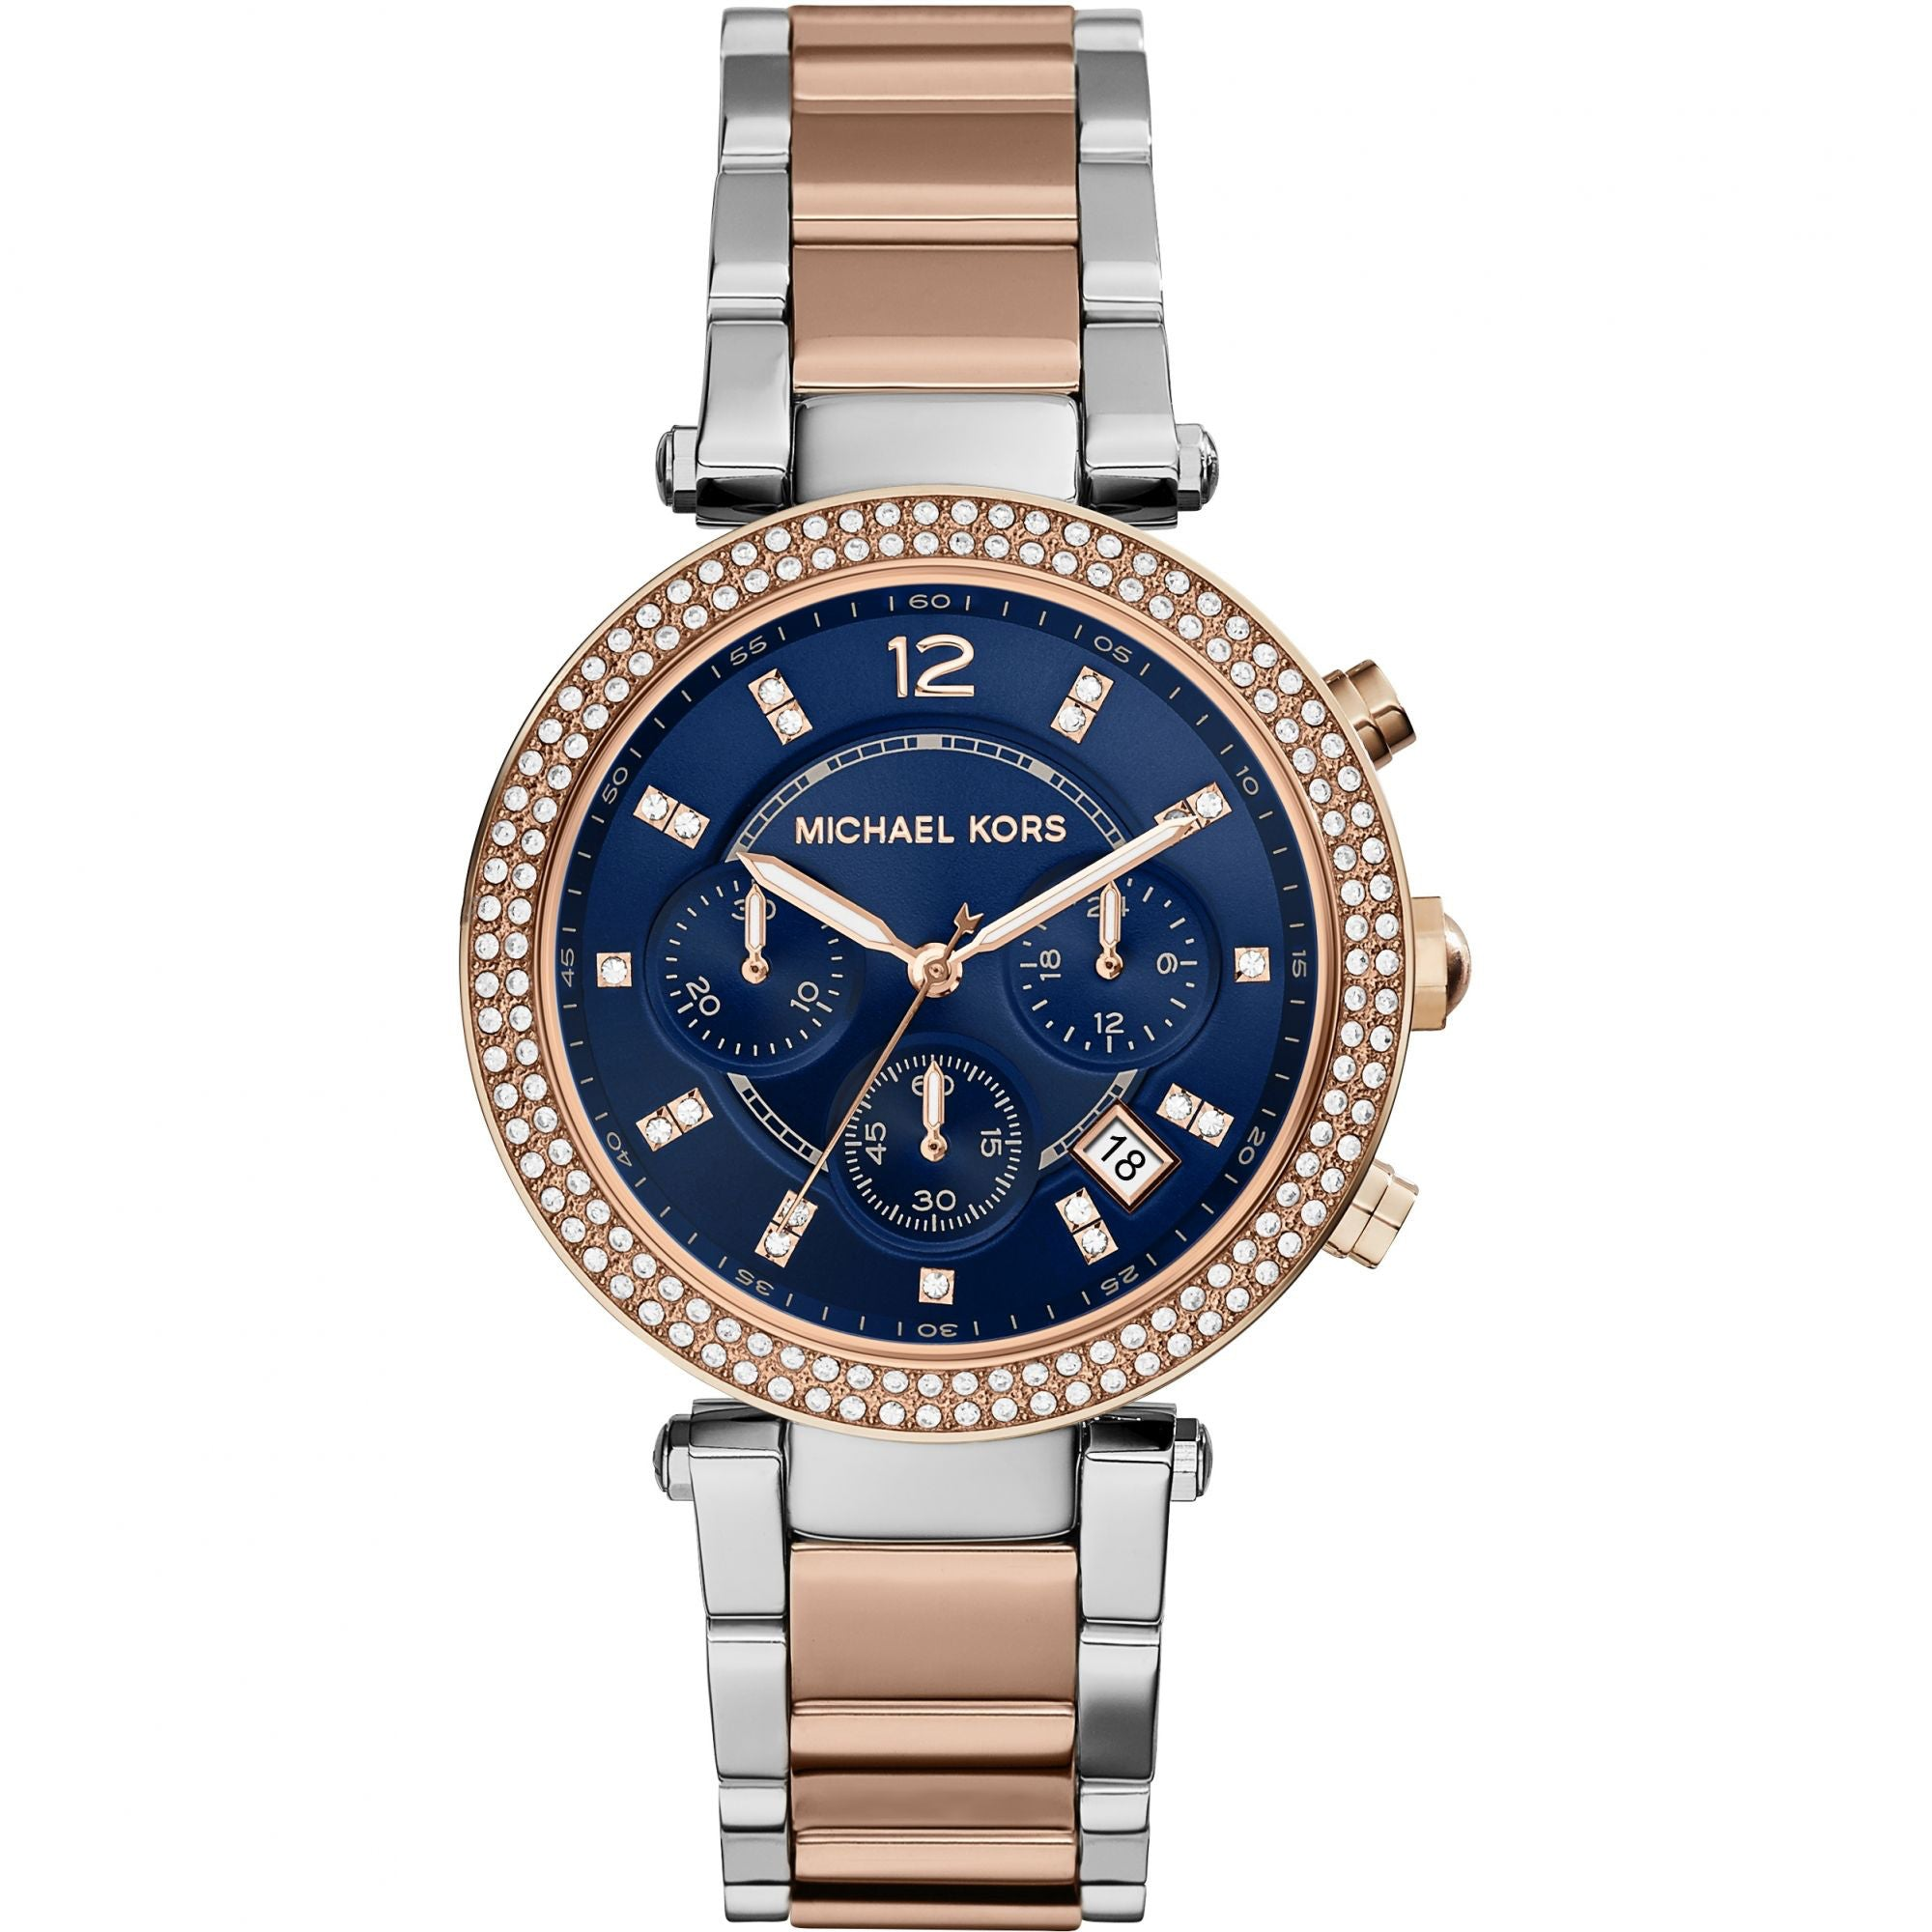 Michael Kors Watch MK6141